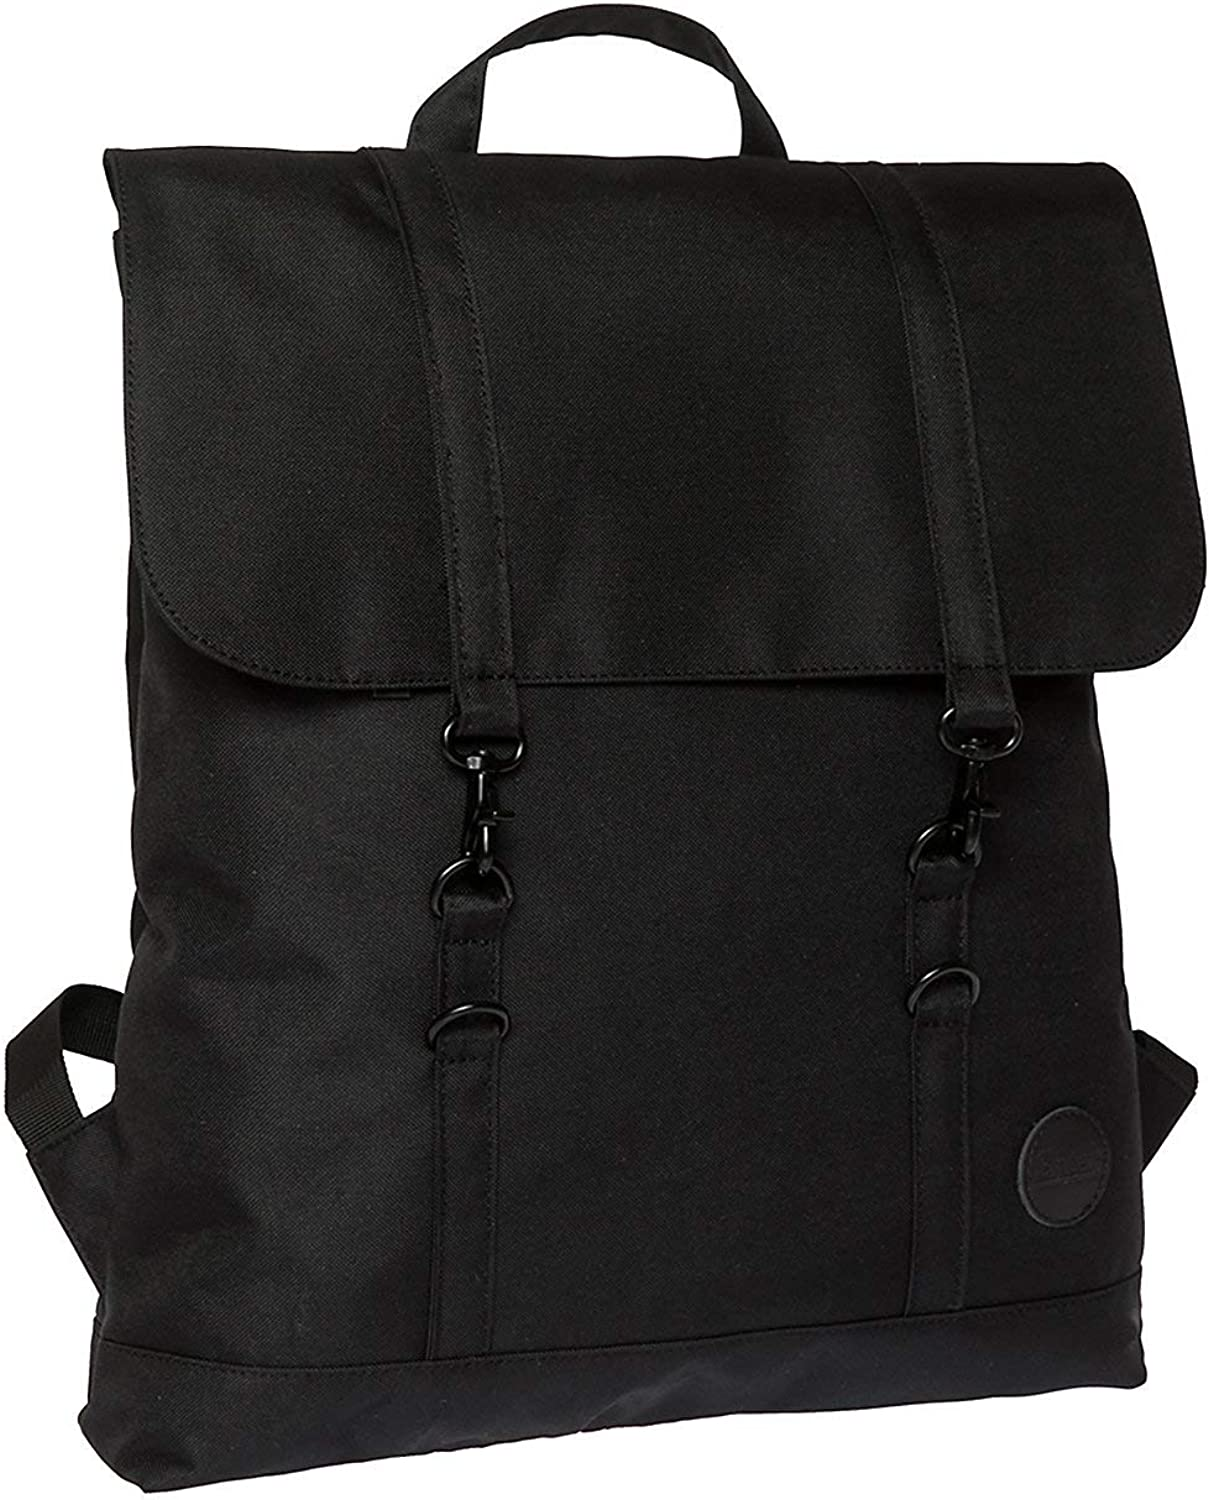 Enter Rucksack City Backpack Recycled Lifestyle Collection S 12 l Polycotton